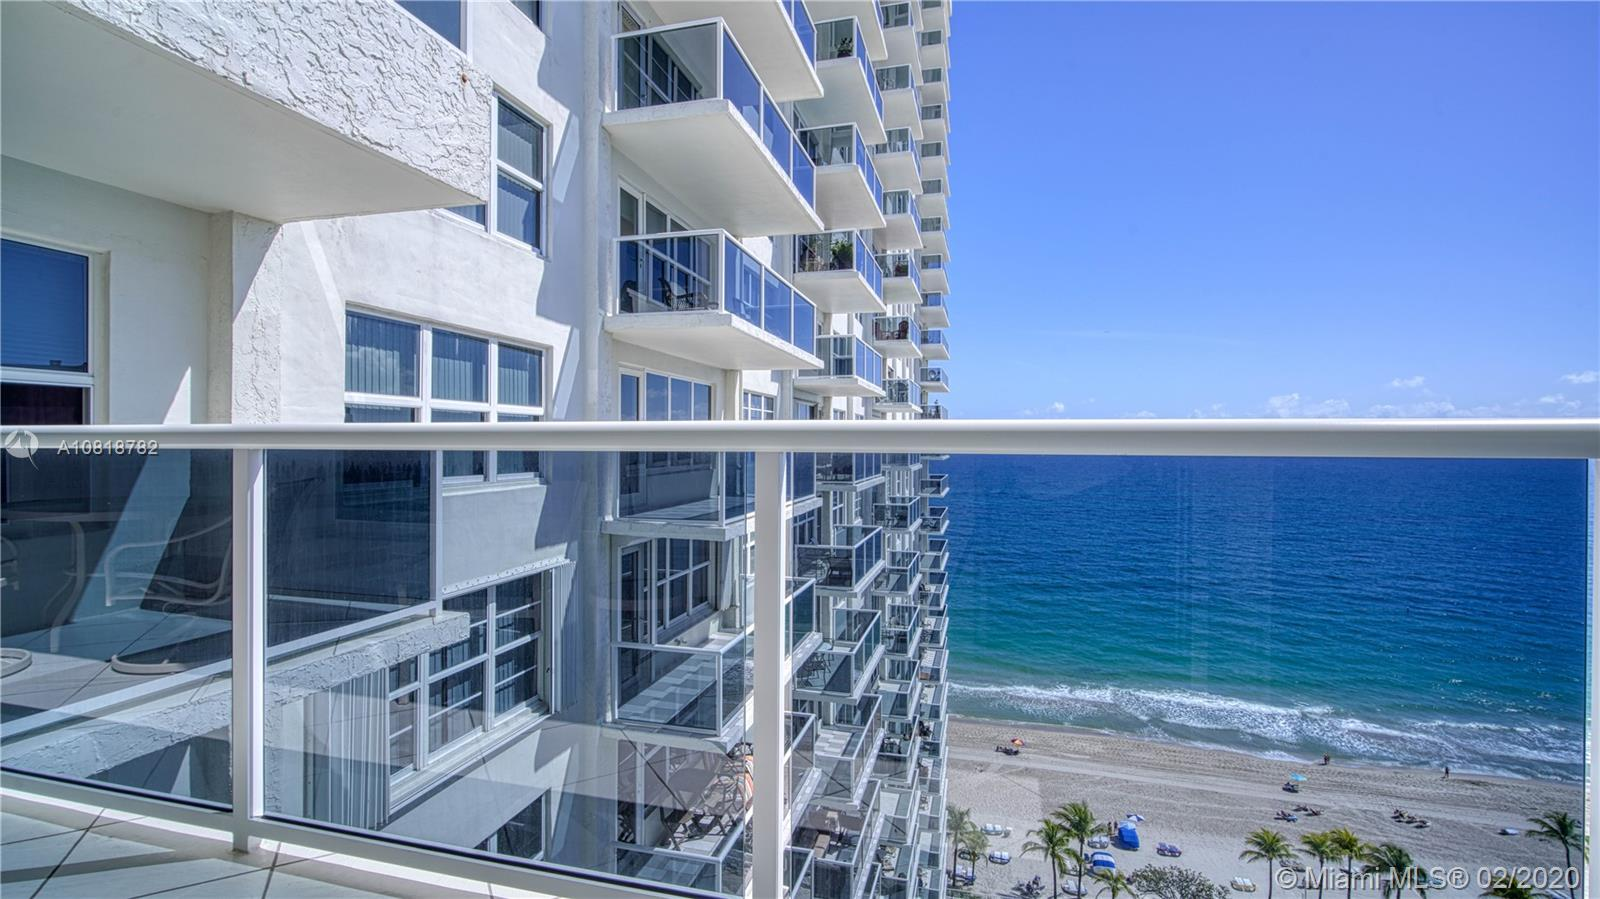 Spectacular 2/2  & 1/2  Condo in the desirable  Playa Del Sol, with direct ocean views from every room, totally updated, Impact Windows, porcelain floors, granite counter tops,  stainless steel appliances, laundry room with a full size washer and dryer.  Walk in closets. Split bedrooms.  Lovely balcony to enjoy the ocean breeze and the sunset. One covered garage space , plus a guess spot .  Stunning lobby , direct beach access, cabanas , heated pool, 2 fitness room. 24 hours security.  Great location right on Galt Mile. Near shopping, restaurants  and more .  It can be rented after one year.